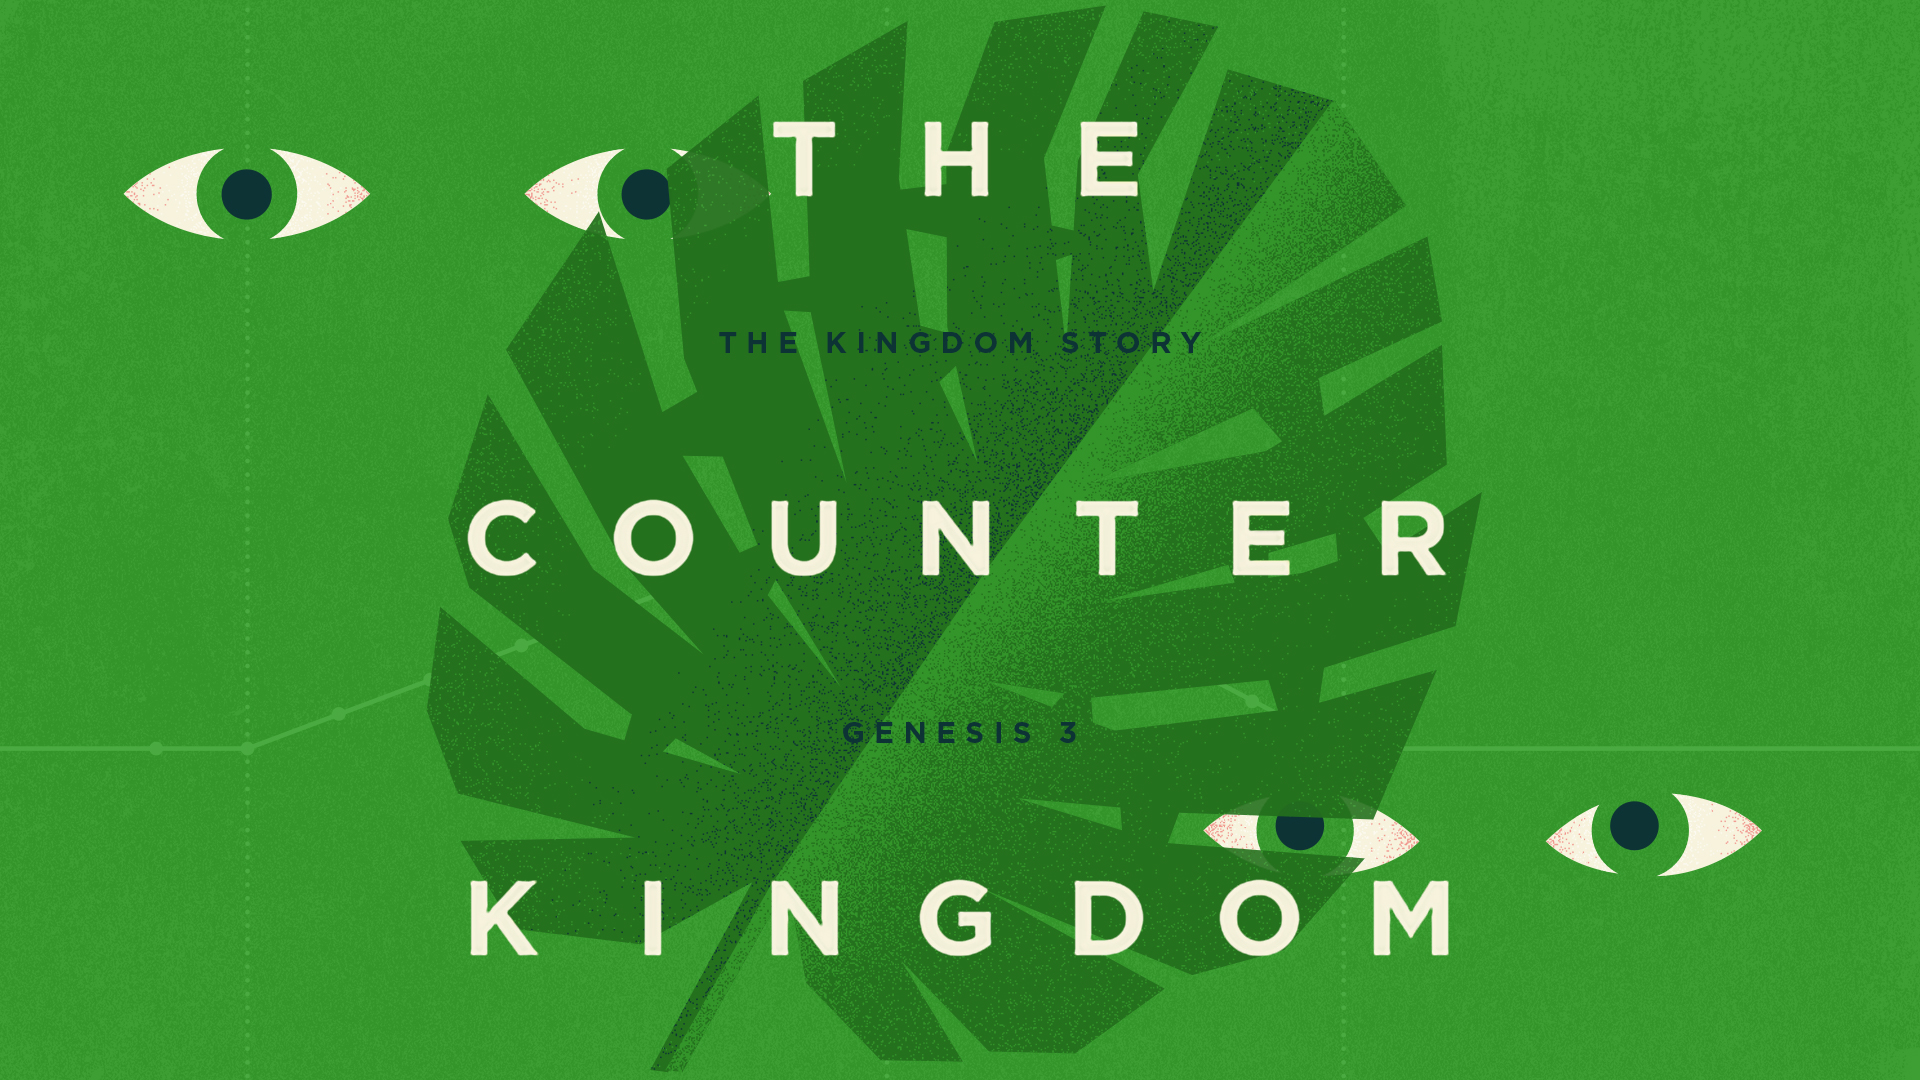 The Counter Kingdom